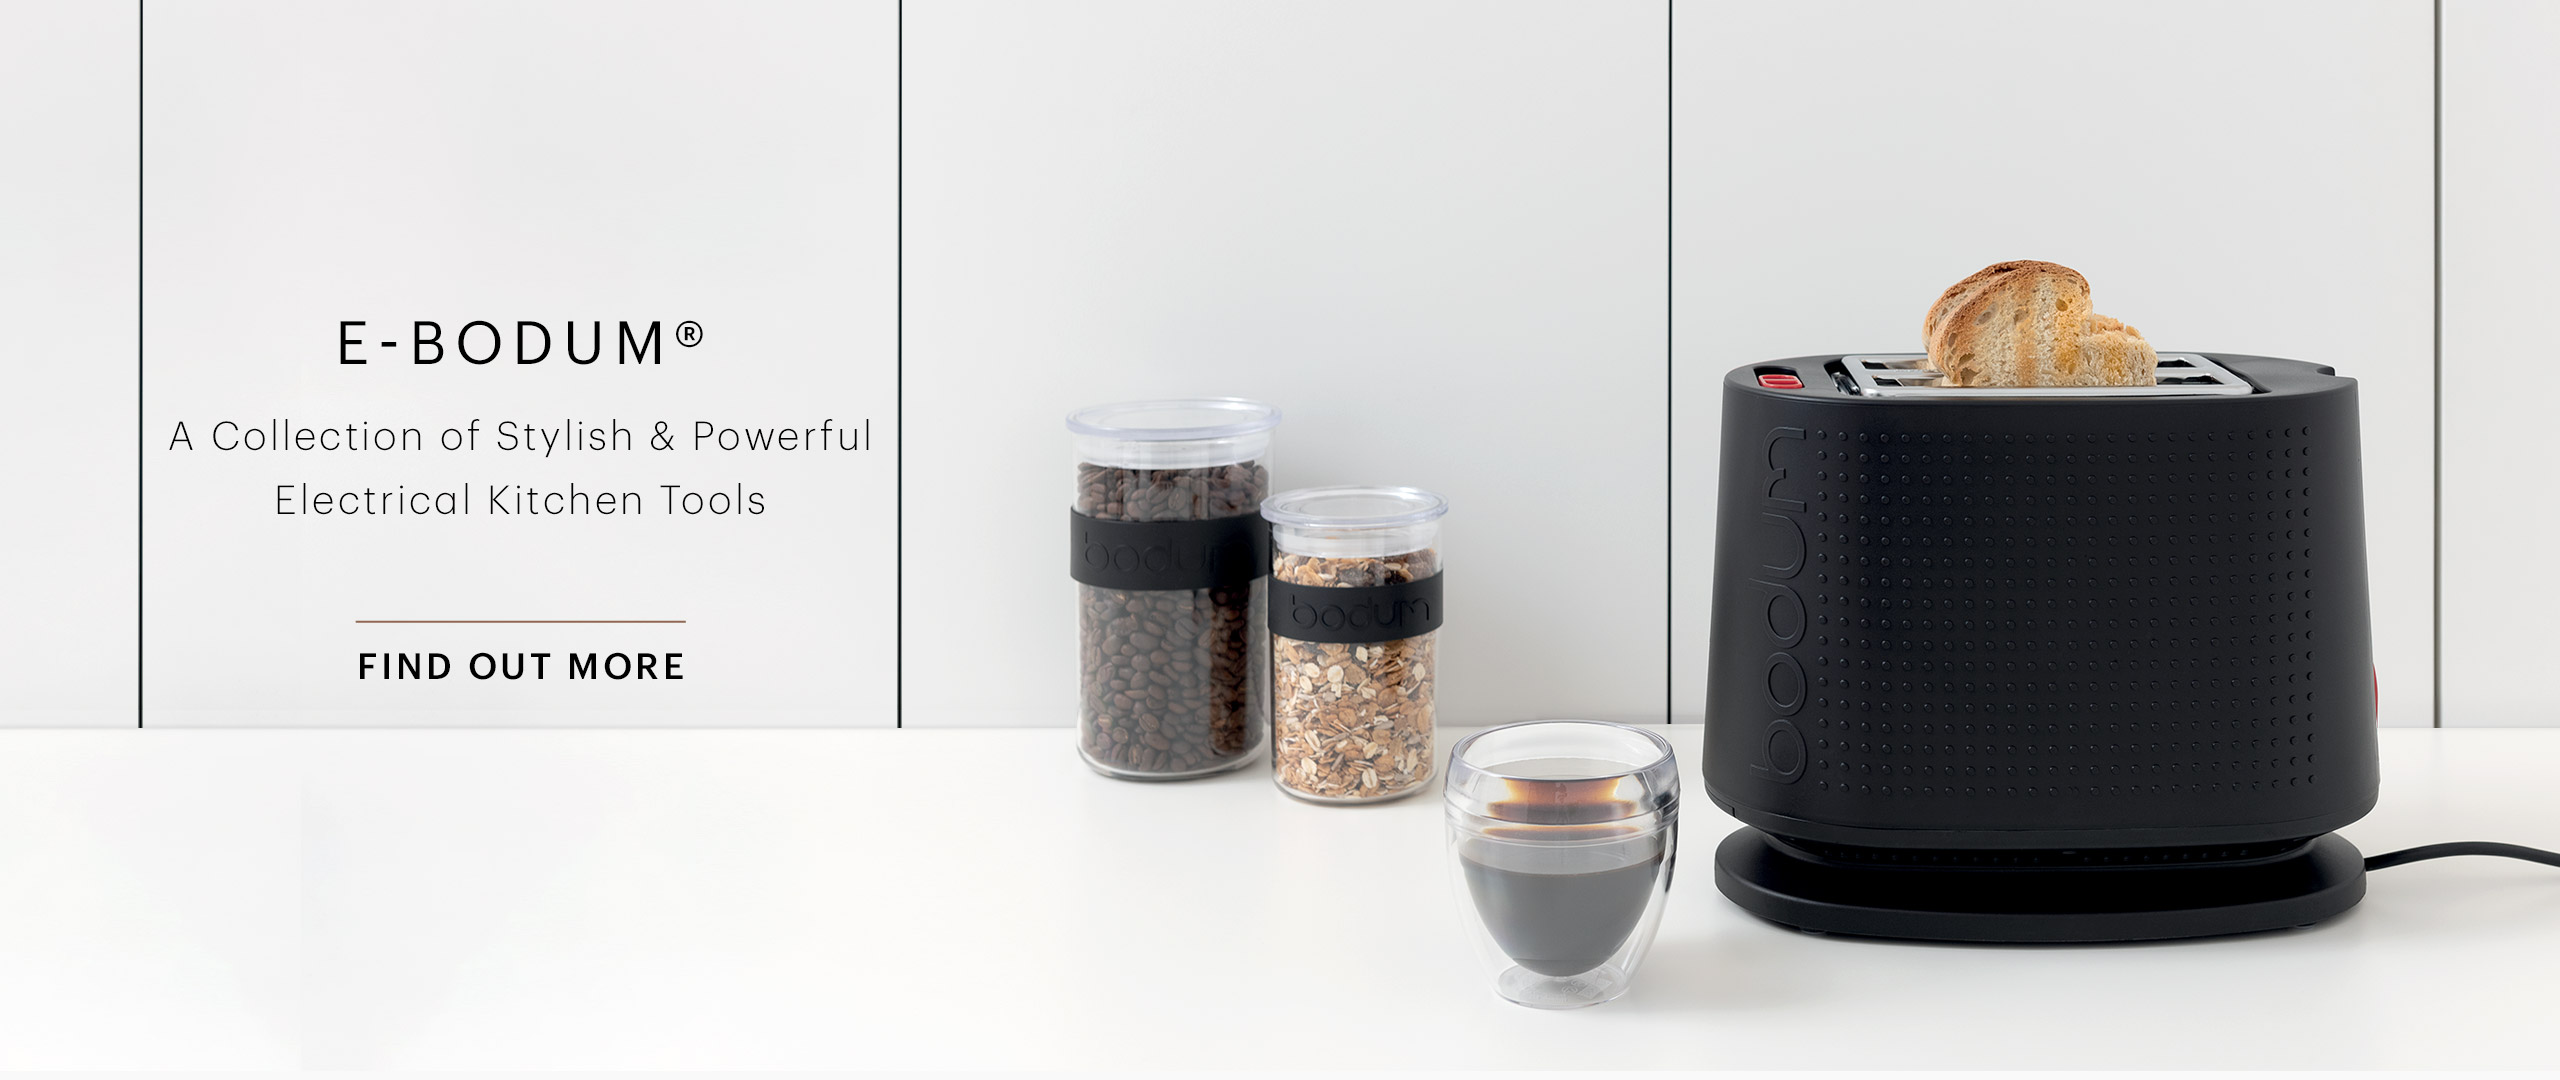 BODUM® - Inspiration and Innovation for Every Kitchen in the World 1ff71bf22dd8d